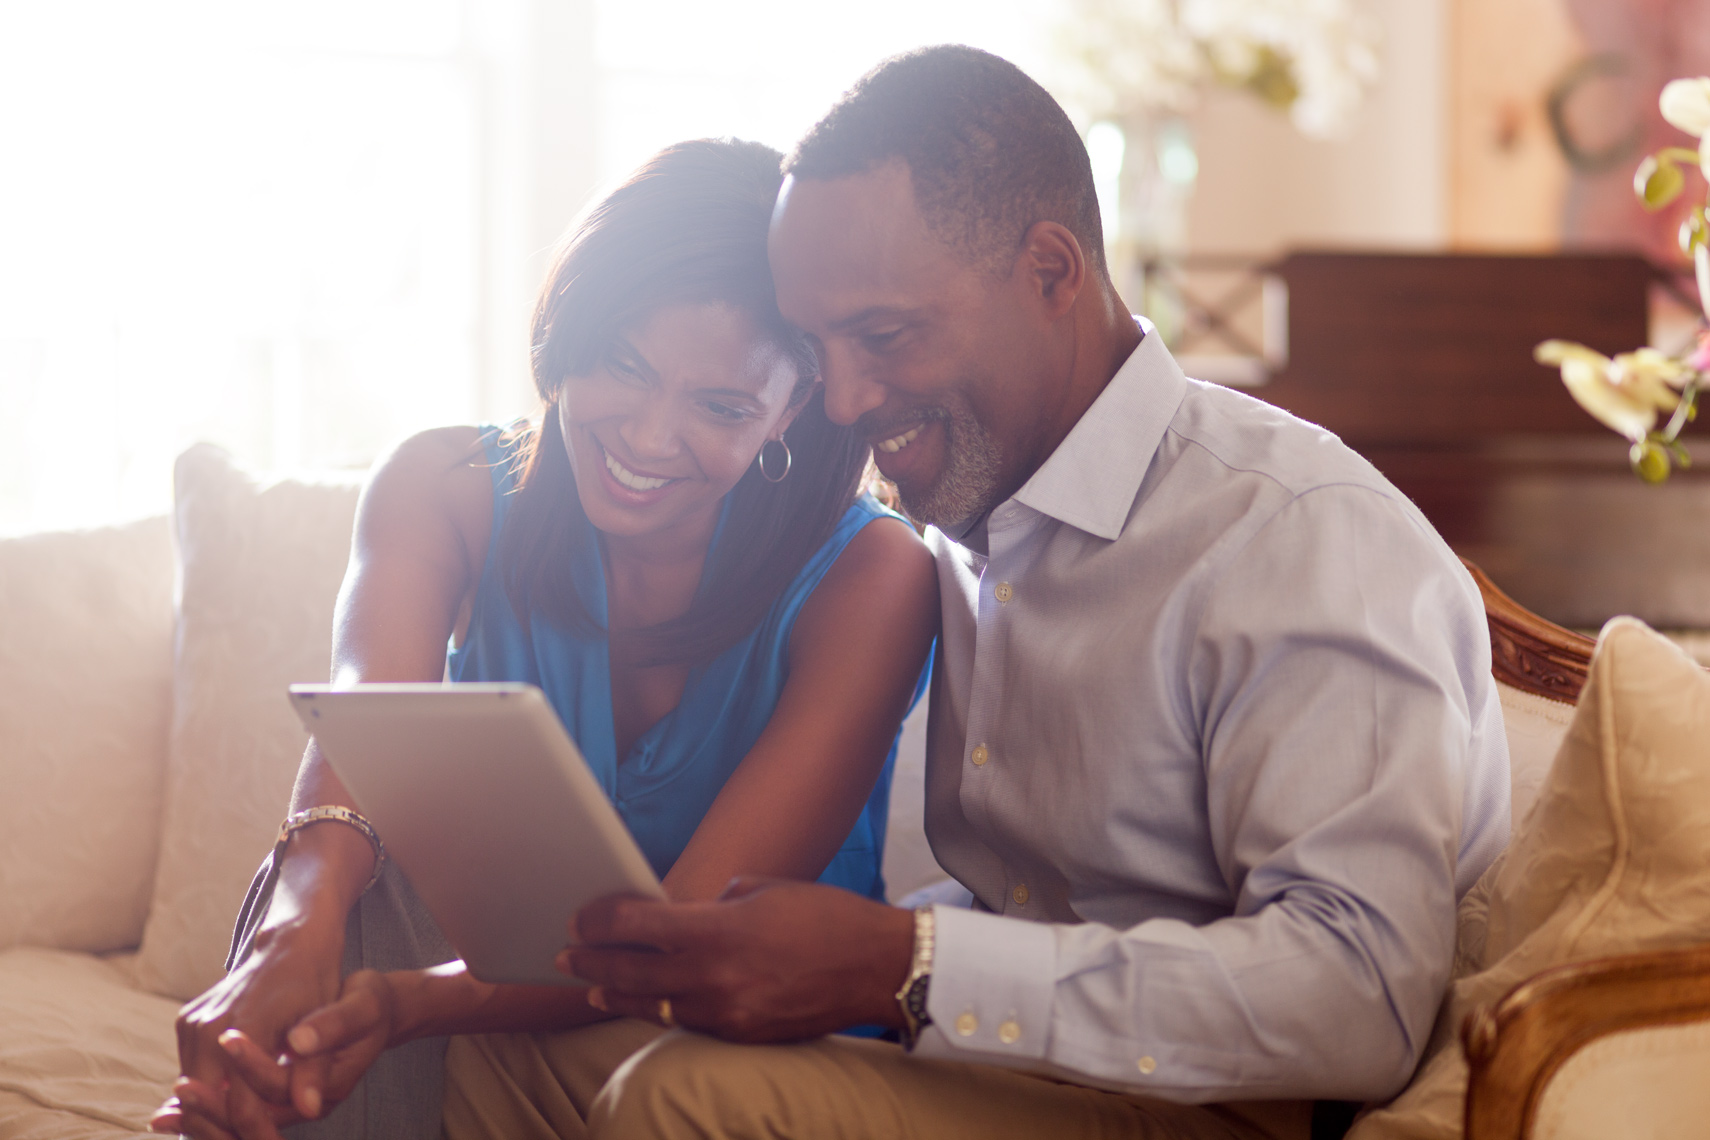 San Francisco Bay Area Advertising, Lifestyle, Commercial Photographer, african american black couple sitting on the couch sofa in the living room with ipad smiling discussing at home